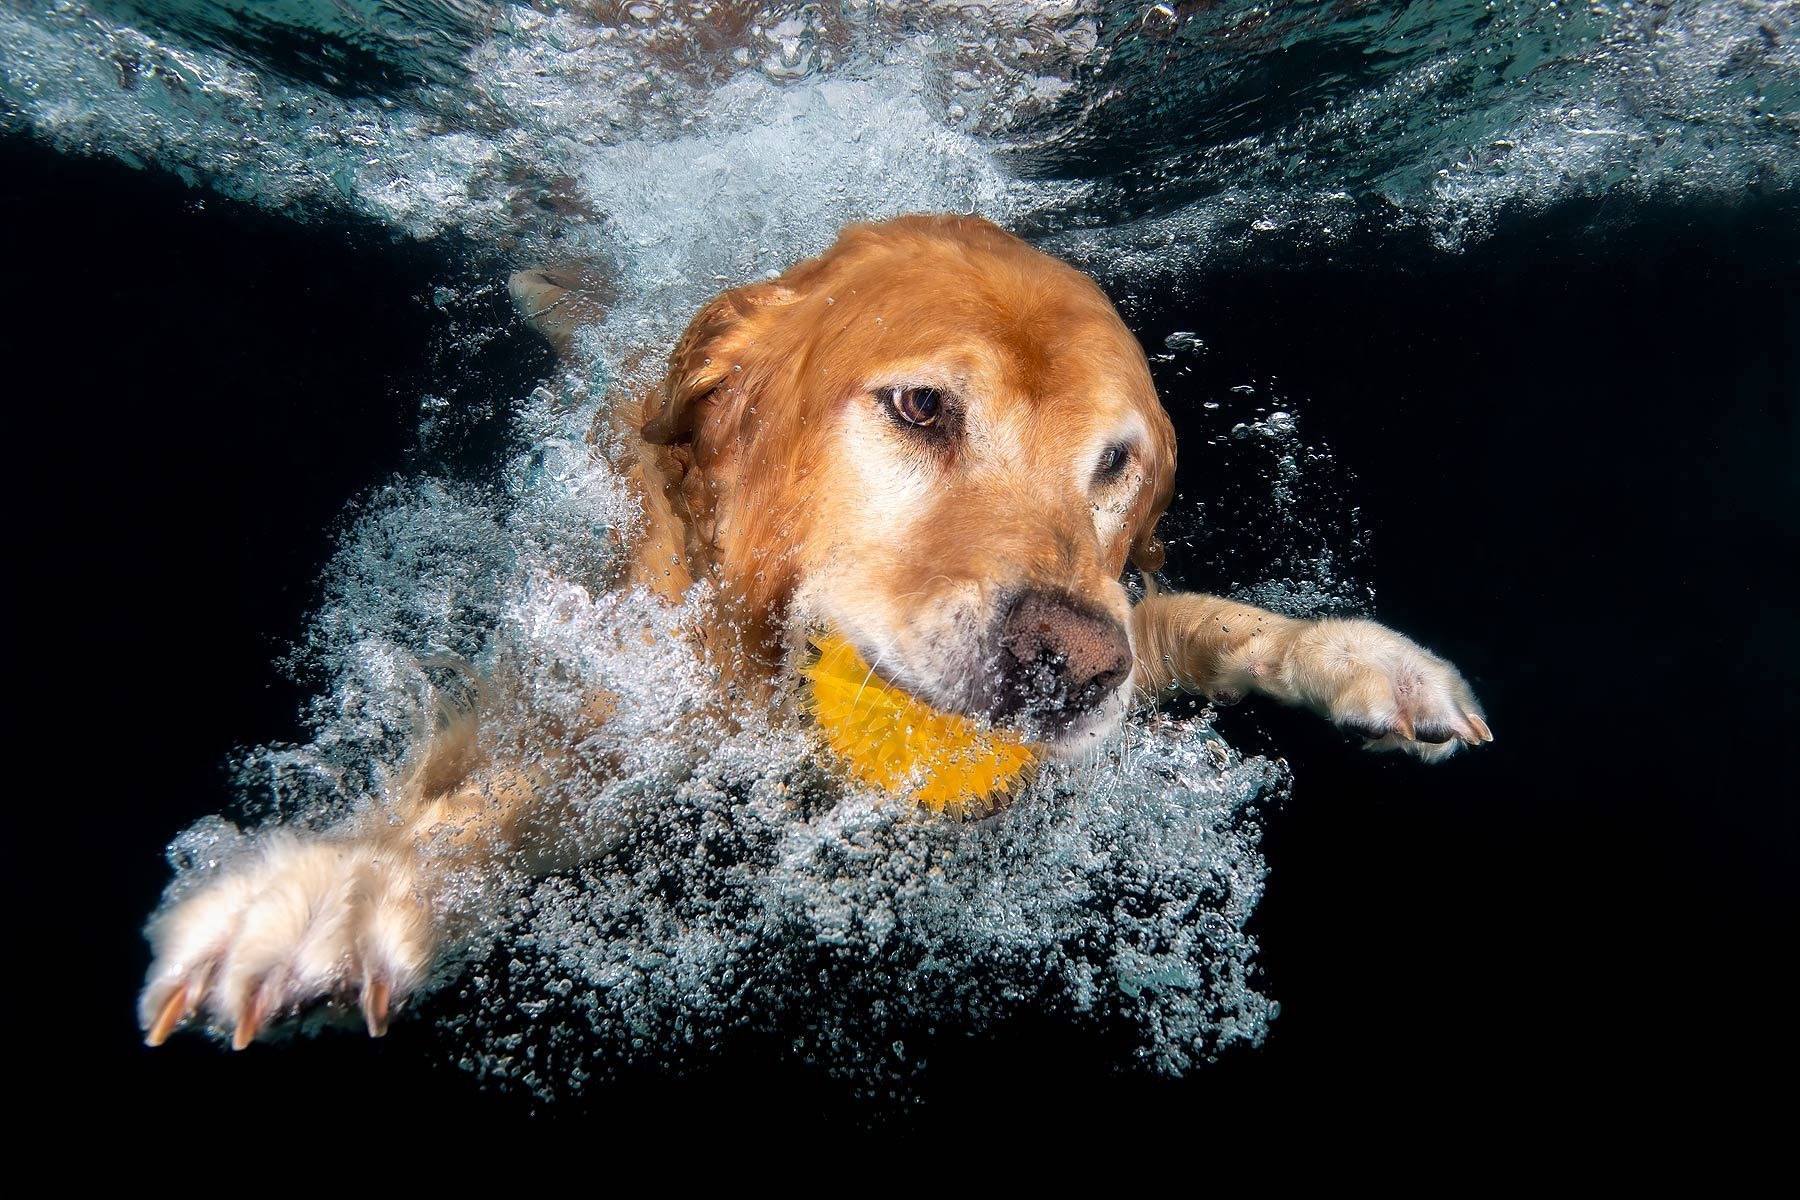 Ozzy-swimming-underwater-with-ball_83A7762-Dover,-FL,-USA.jpg